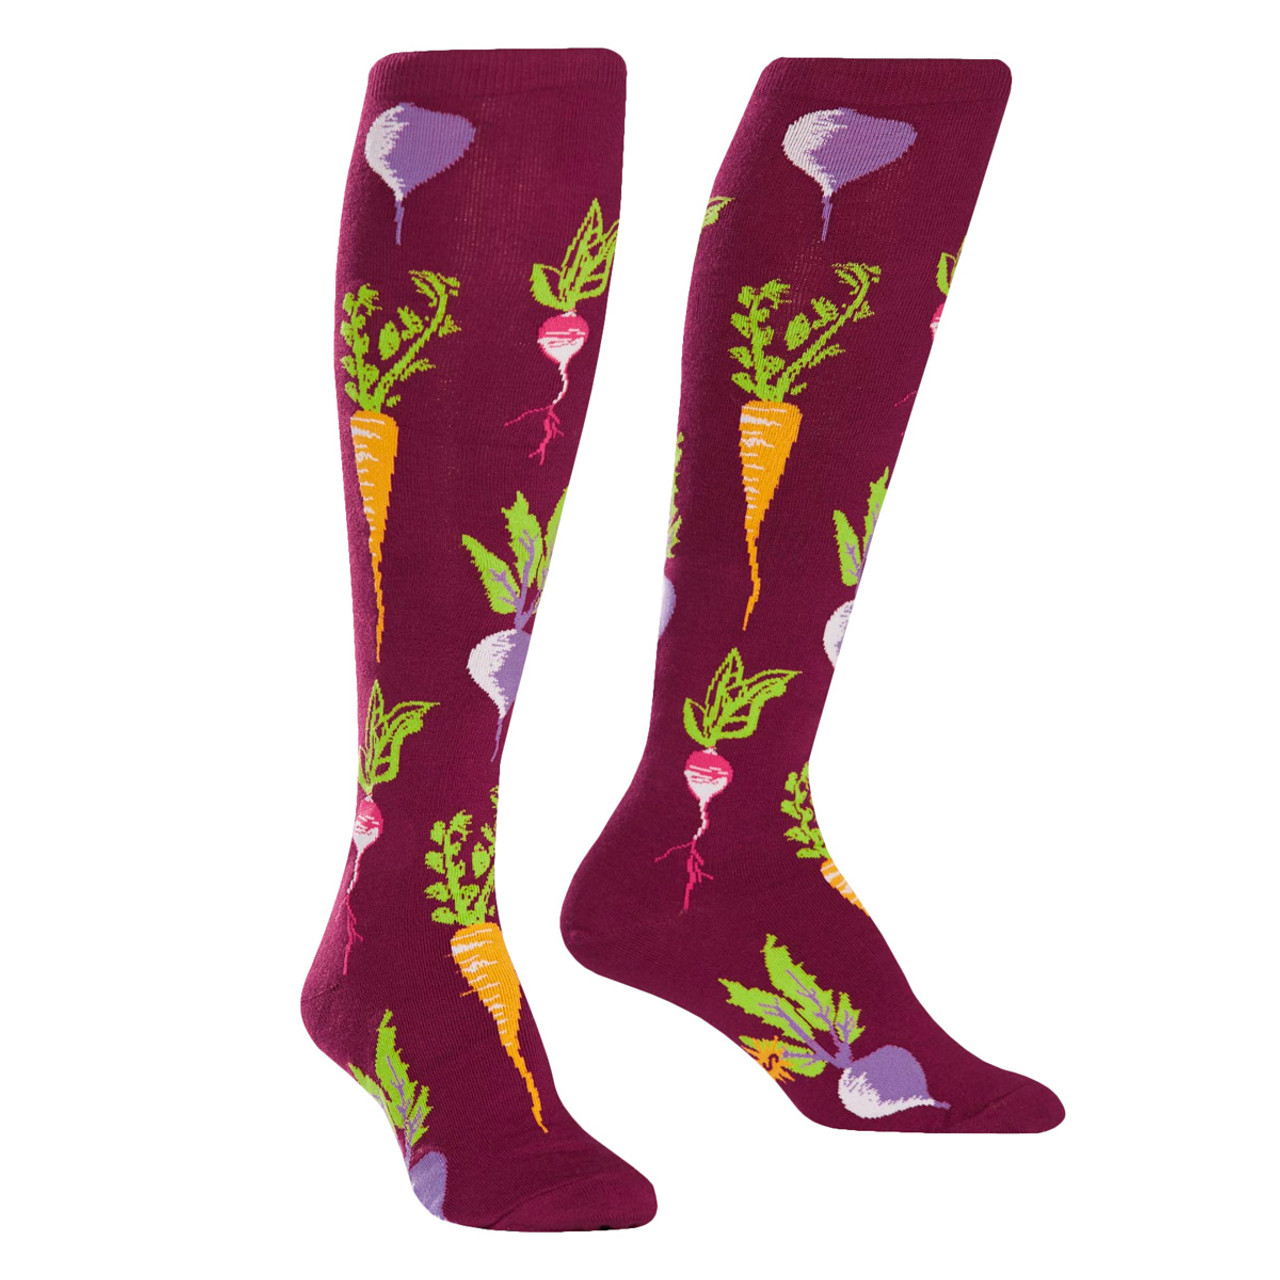 8aef9be00d3 Turnip the Beet! Knee-High Socks - Dream in Plastic